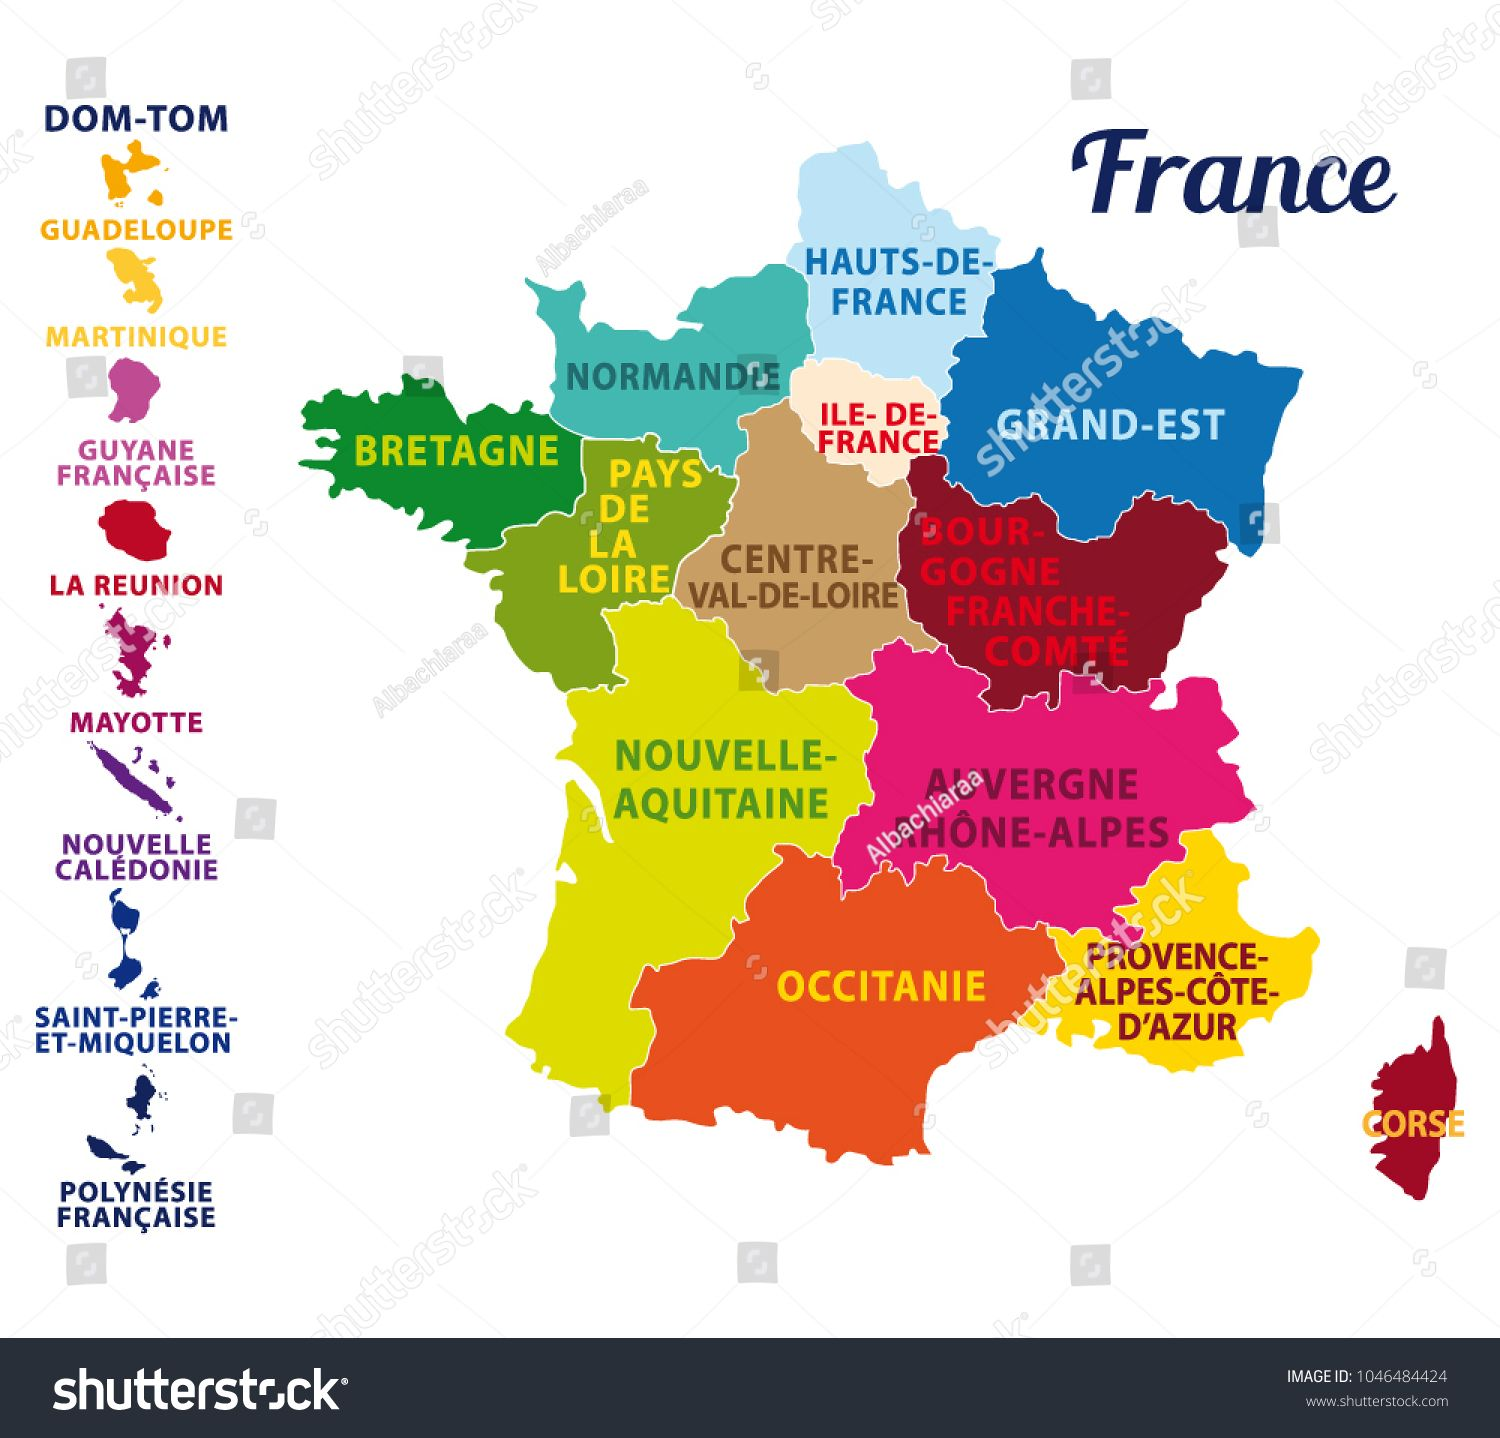 Colorful Map Of France With French Islands And New Regions French